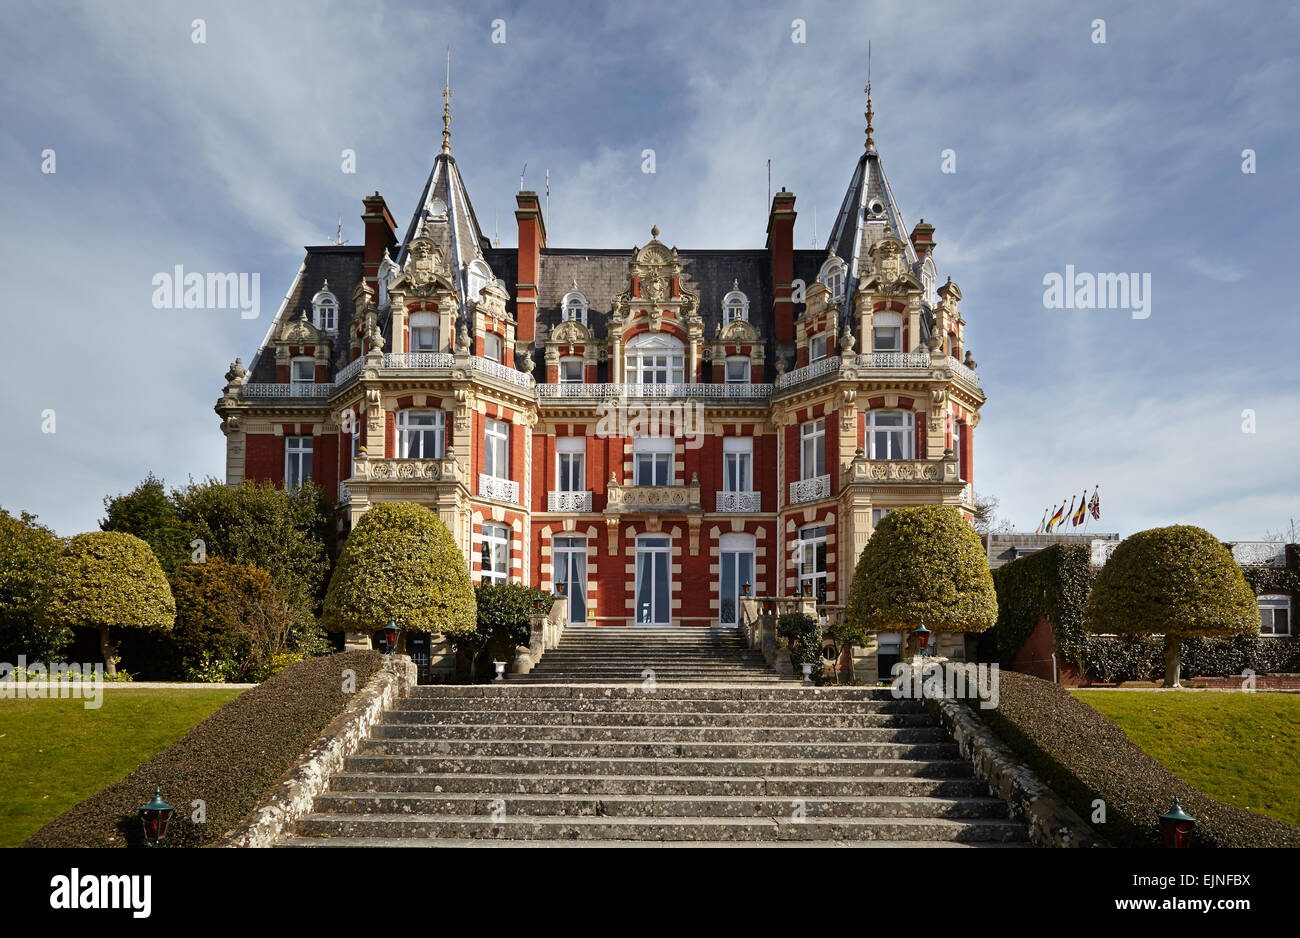 Chateau Impney English Hotel In Style Of French Chateau